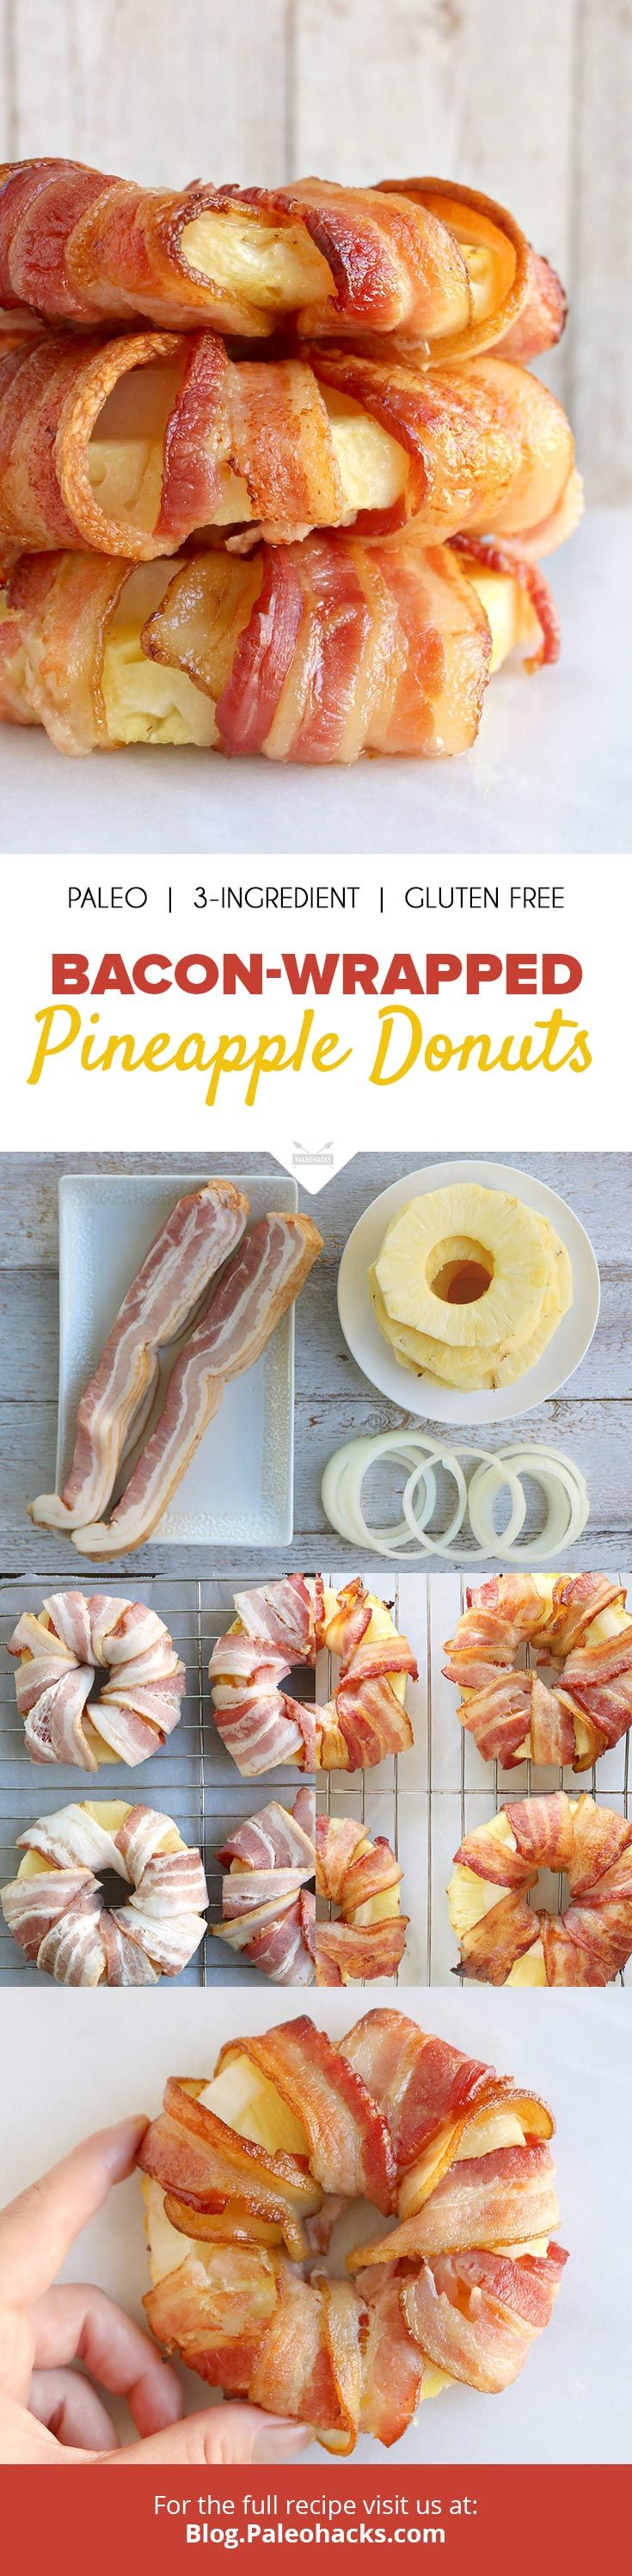 Bacon-Wrapped Pineapple Donuts